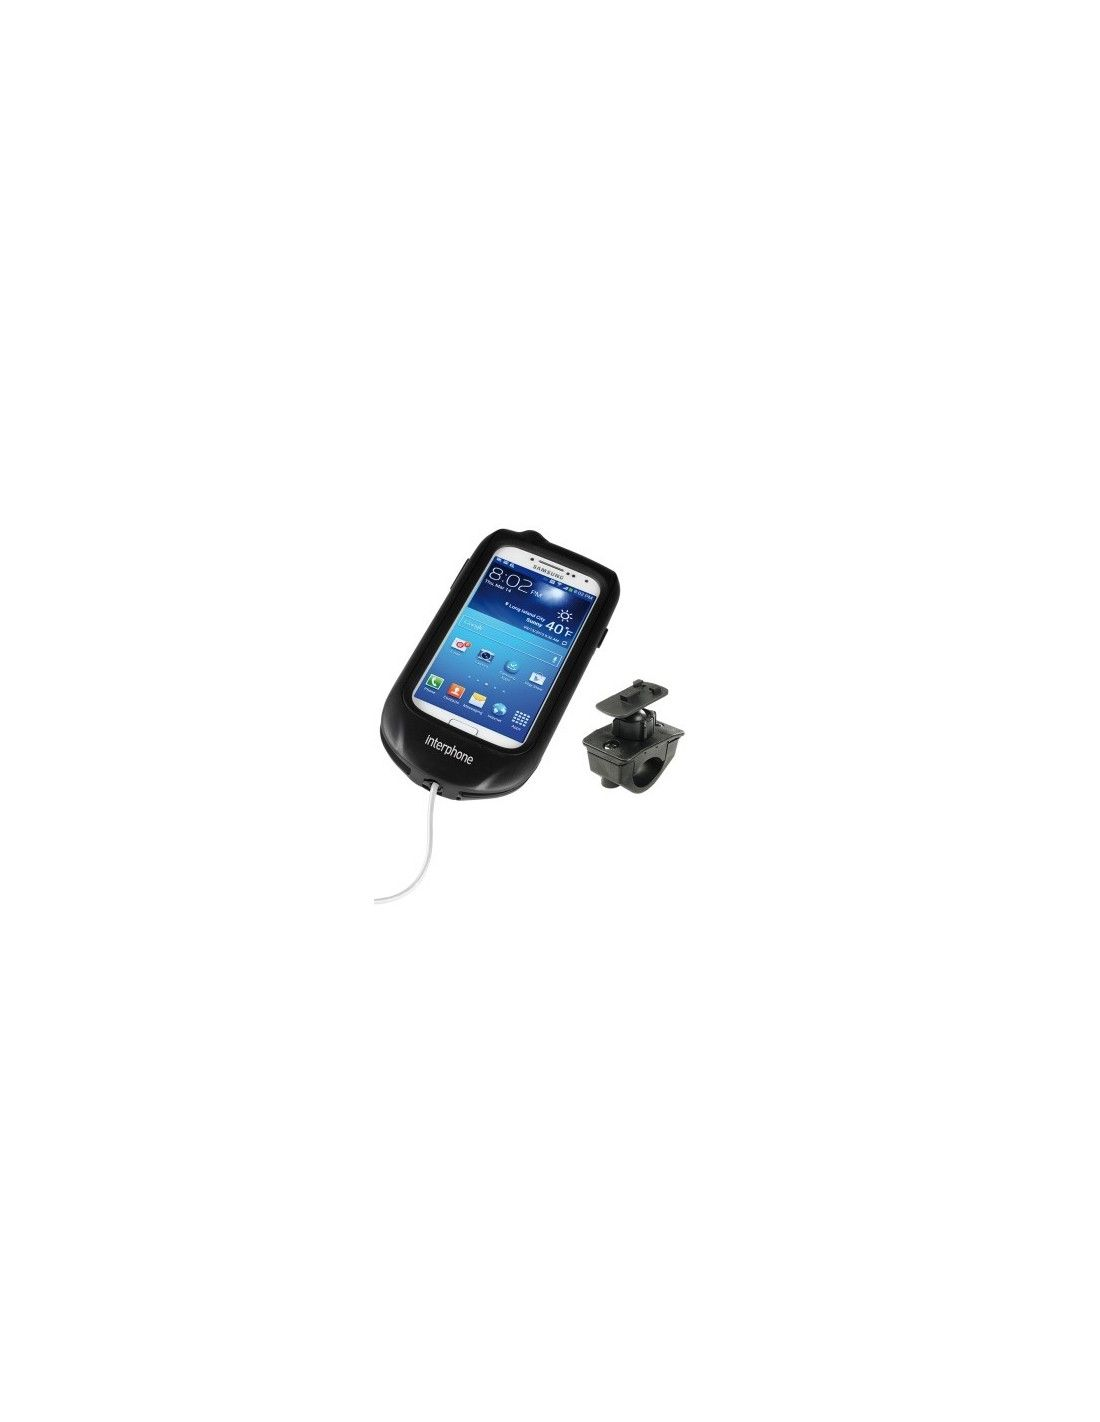 Phone holder for motorcycle handlebar mount for Samsung Galaxy S4